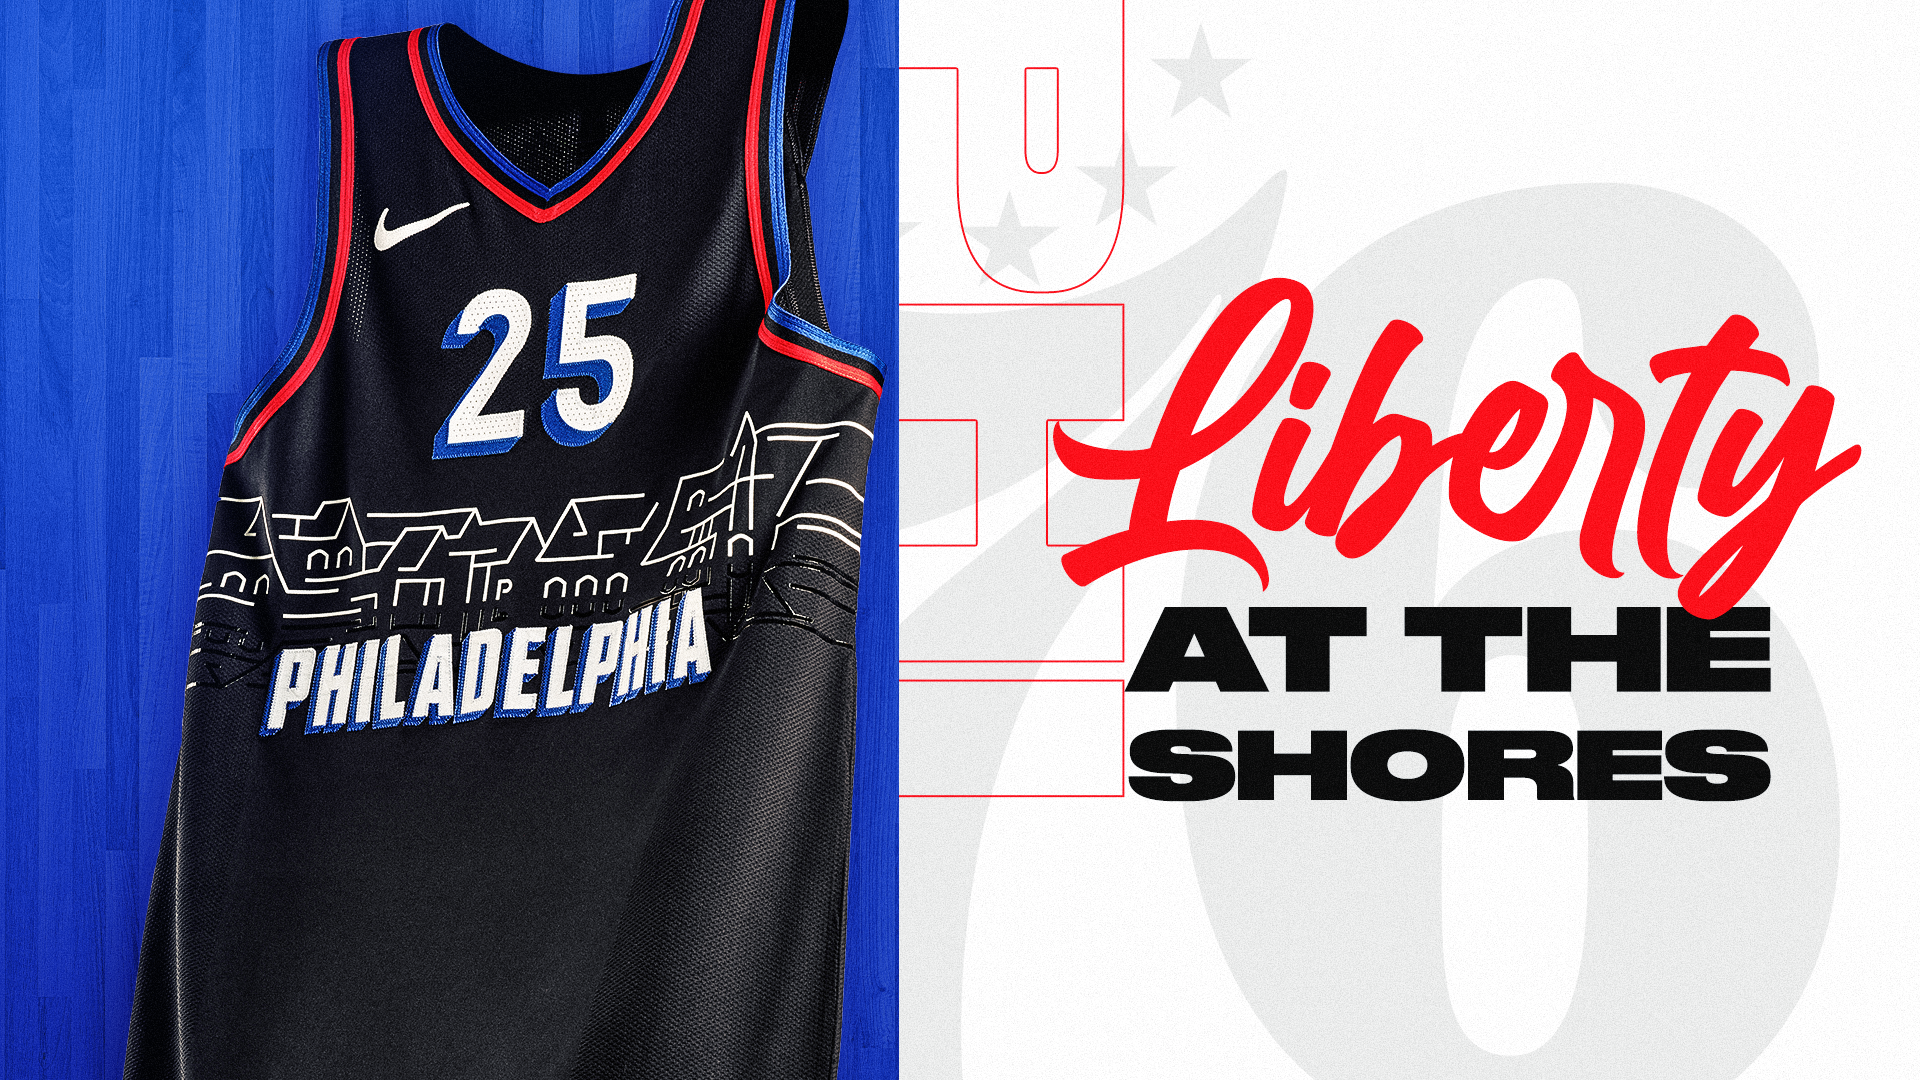 Philadelphia 76ers: Liberty At The Shores